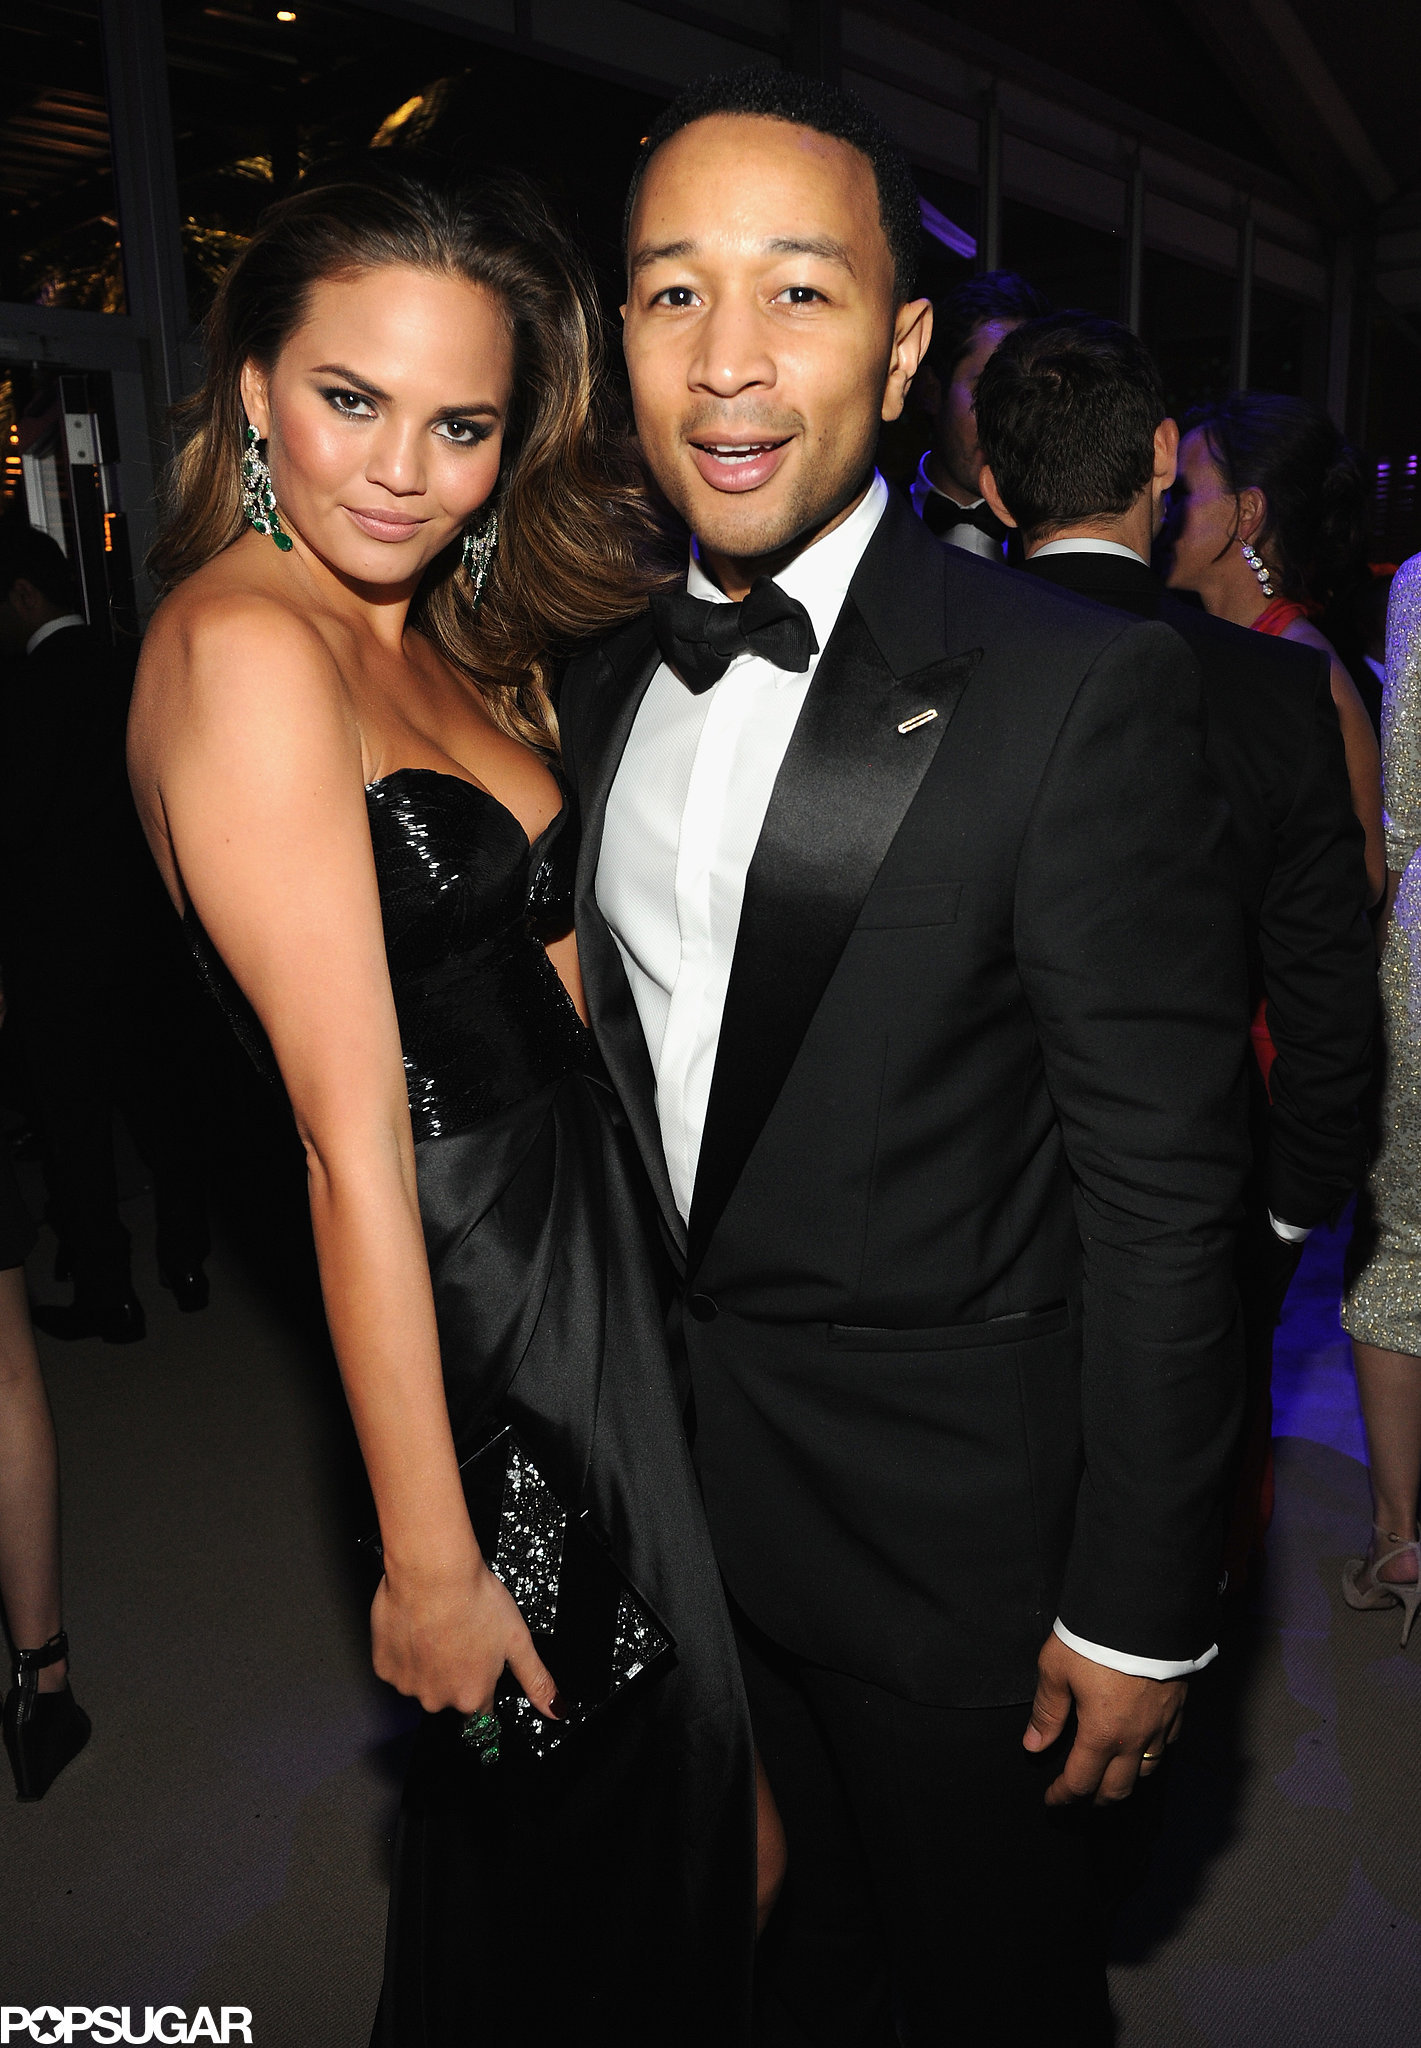 Chrissy-Teigen-John-Legend-posed-together-after-his-performance